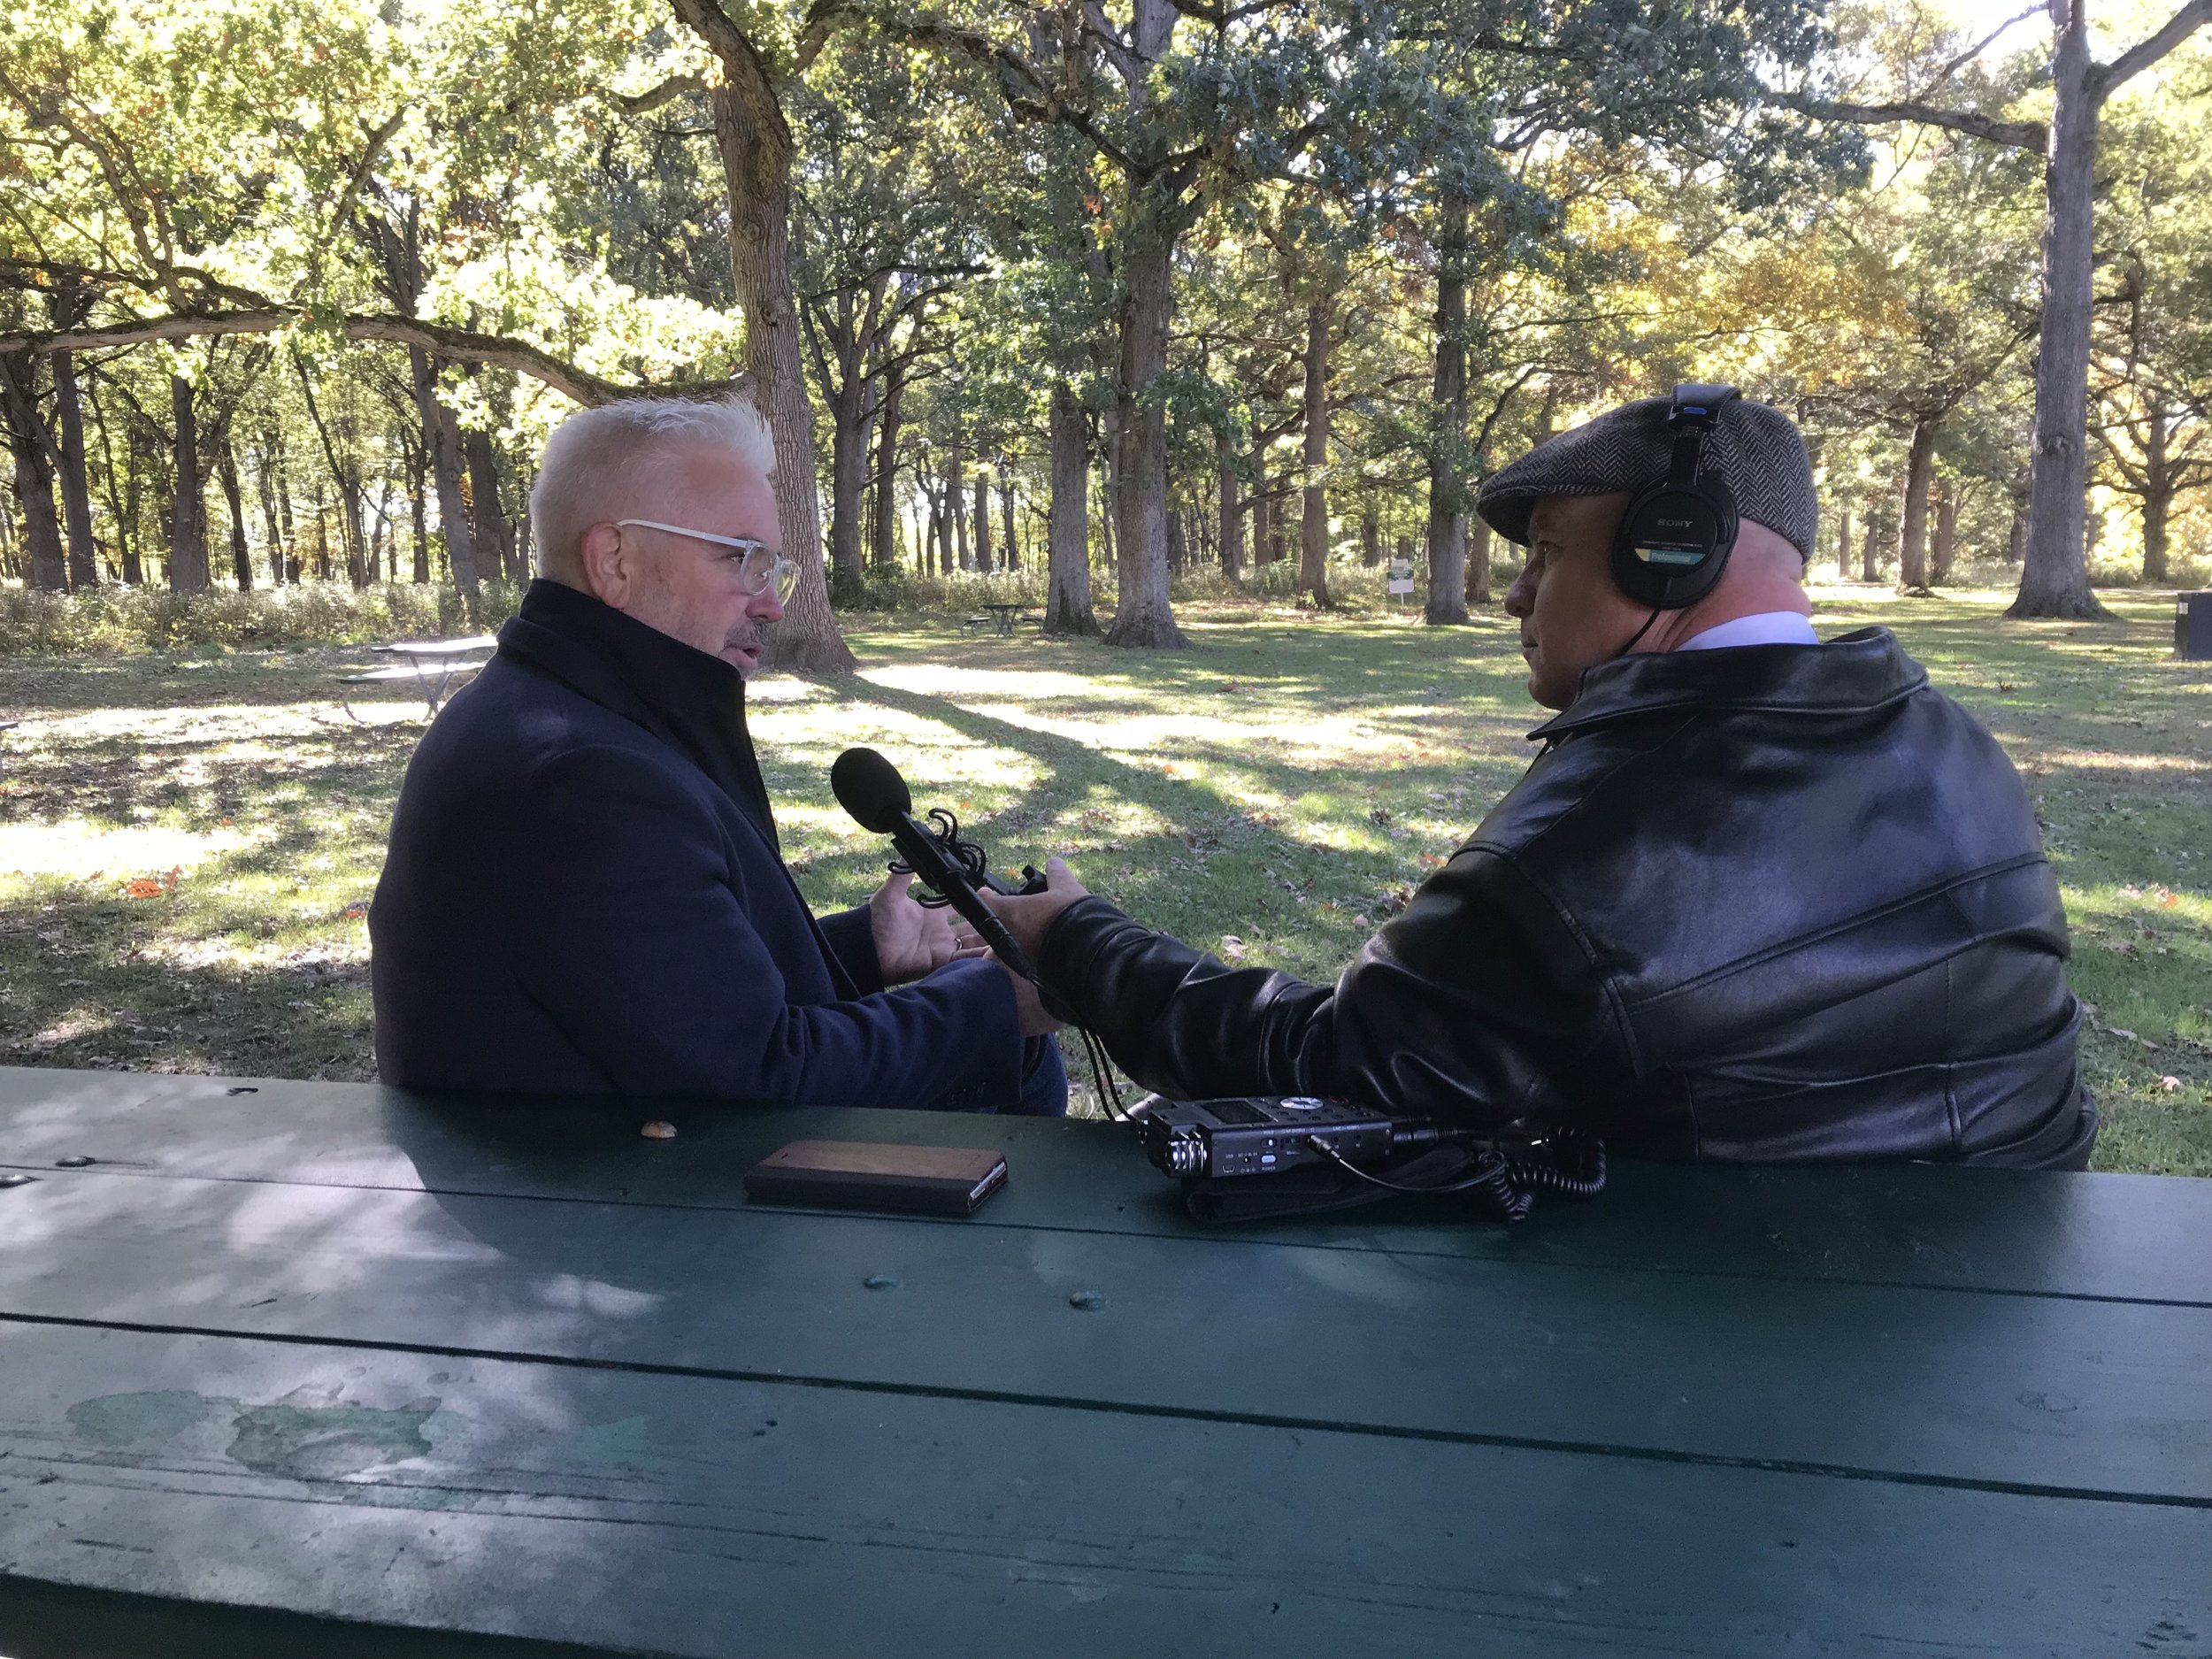 Tree-Hab creator John Gathright (left) and First Light host Brian O'Keefe talked in the shade of an oak forest at Fabyan Woods Forest Preserve